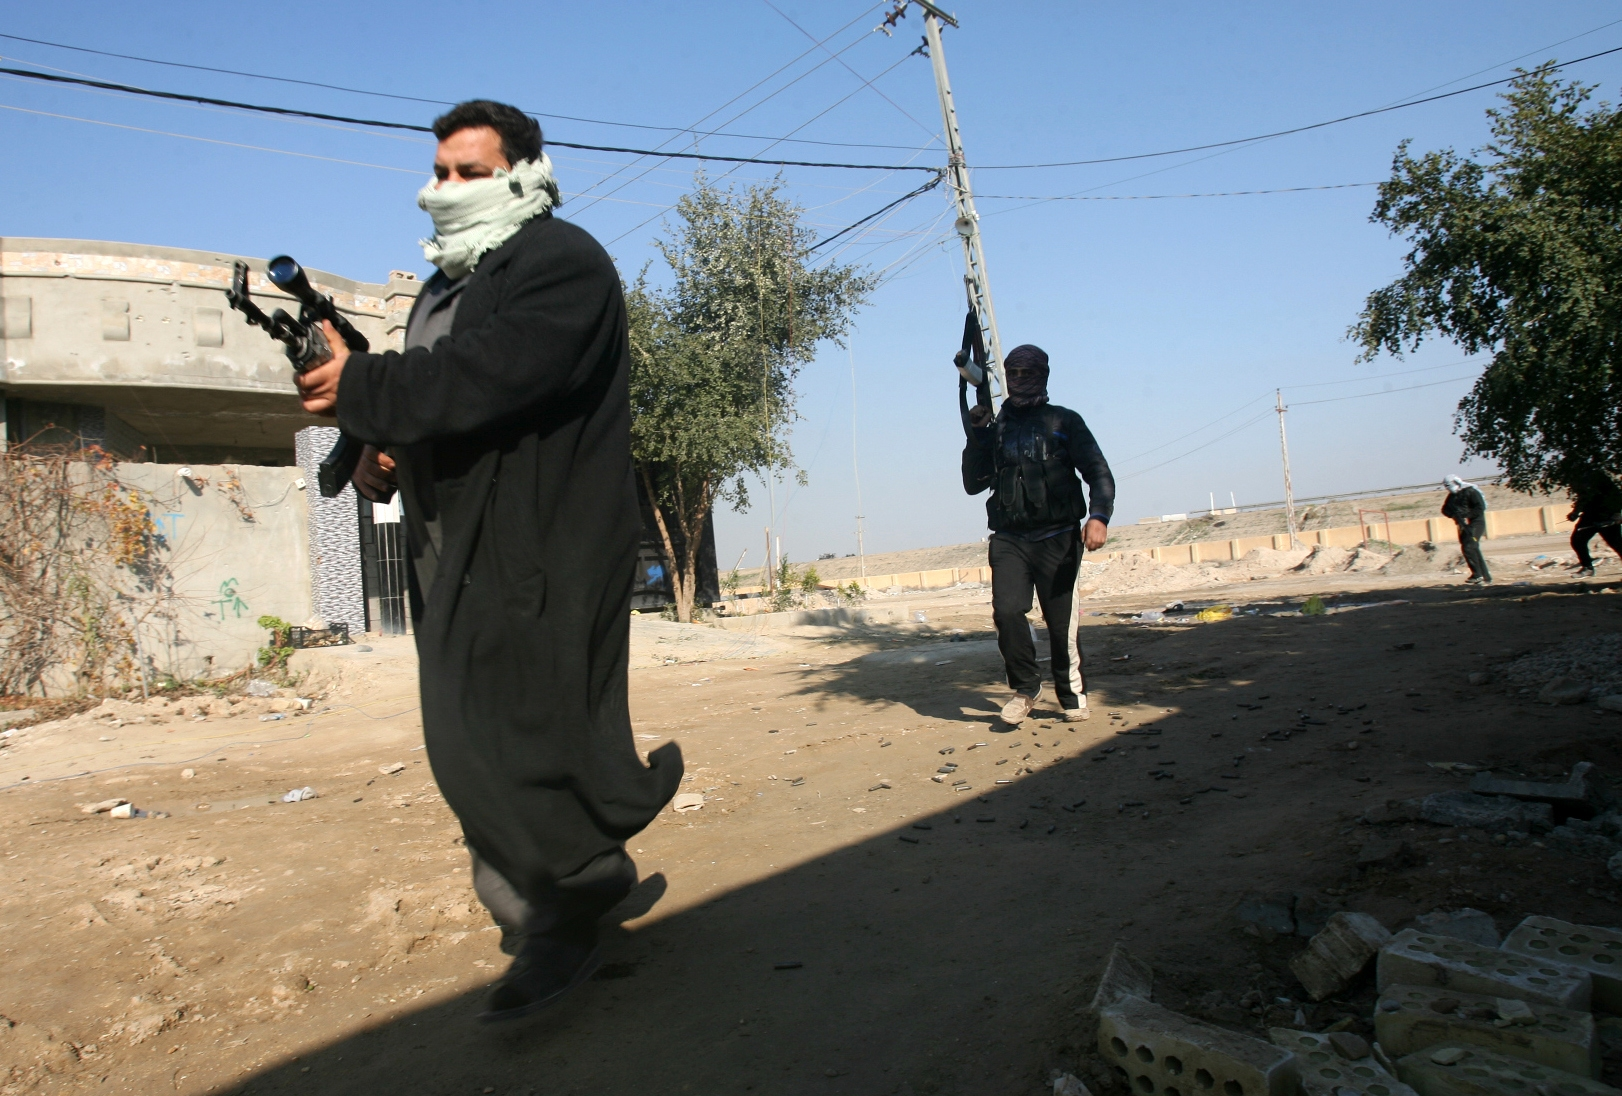 Gunmen linked with an al-Qaida affiliate patrol the streets of Fallujah after expelling the government military. (AP photo)